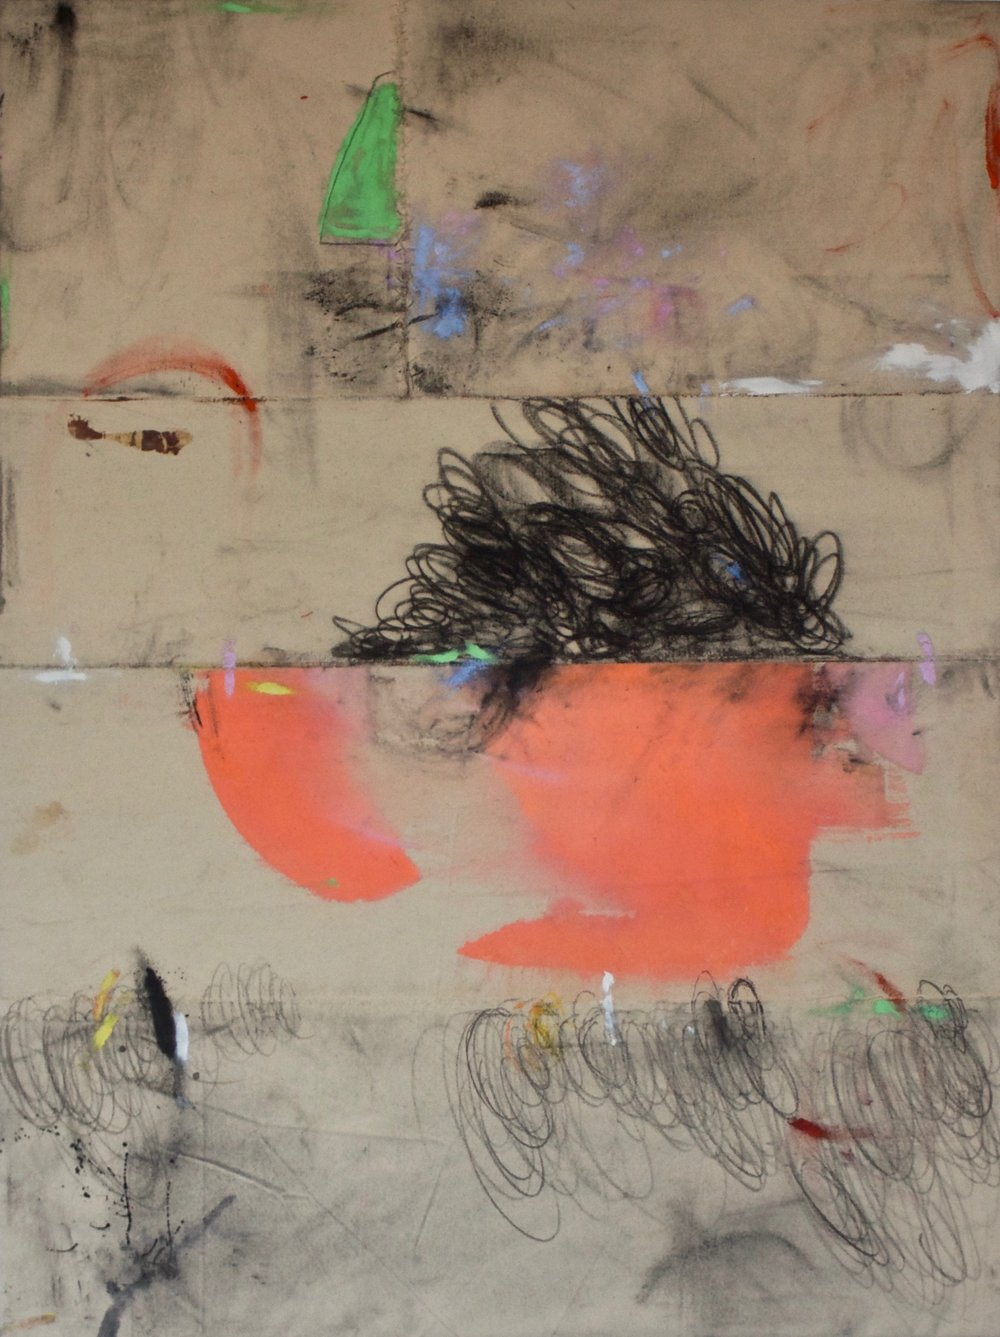 Dana James,  Mop Top (Sprinter V) , 2018, ink, oil, graphite, pigment on sewn canvas, 48 x 36 inches, $5000.